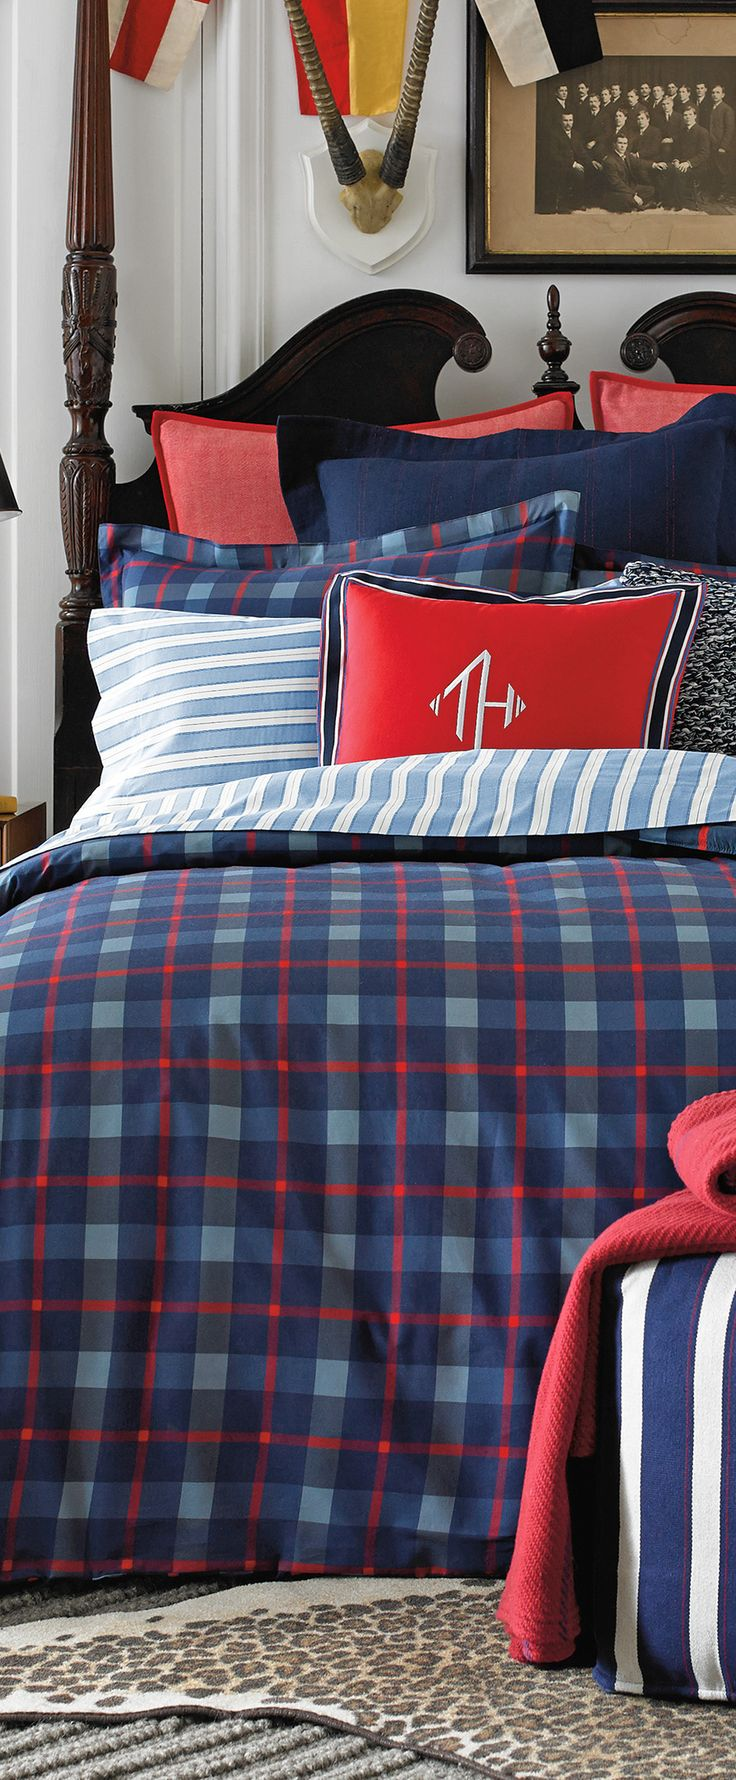 Nfl bedding for boys - Tommy Hilfiger Boston Plaid Bedding